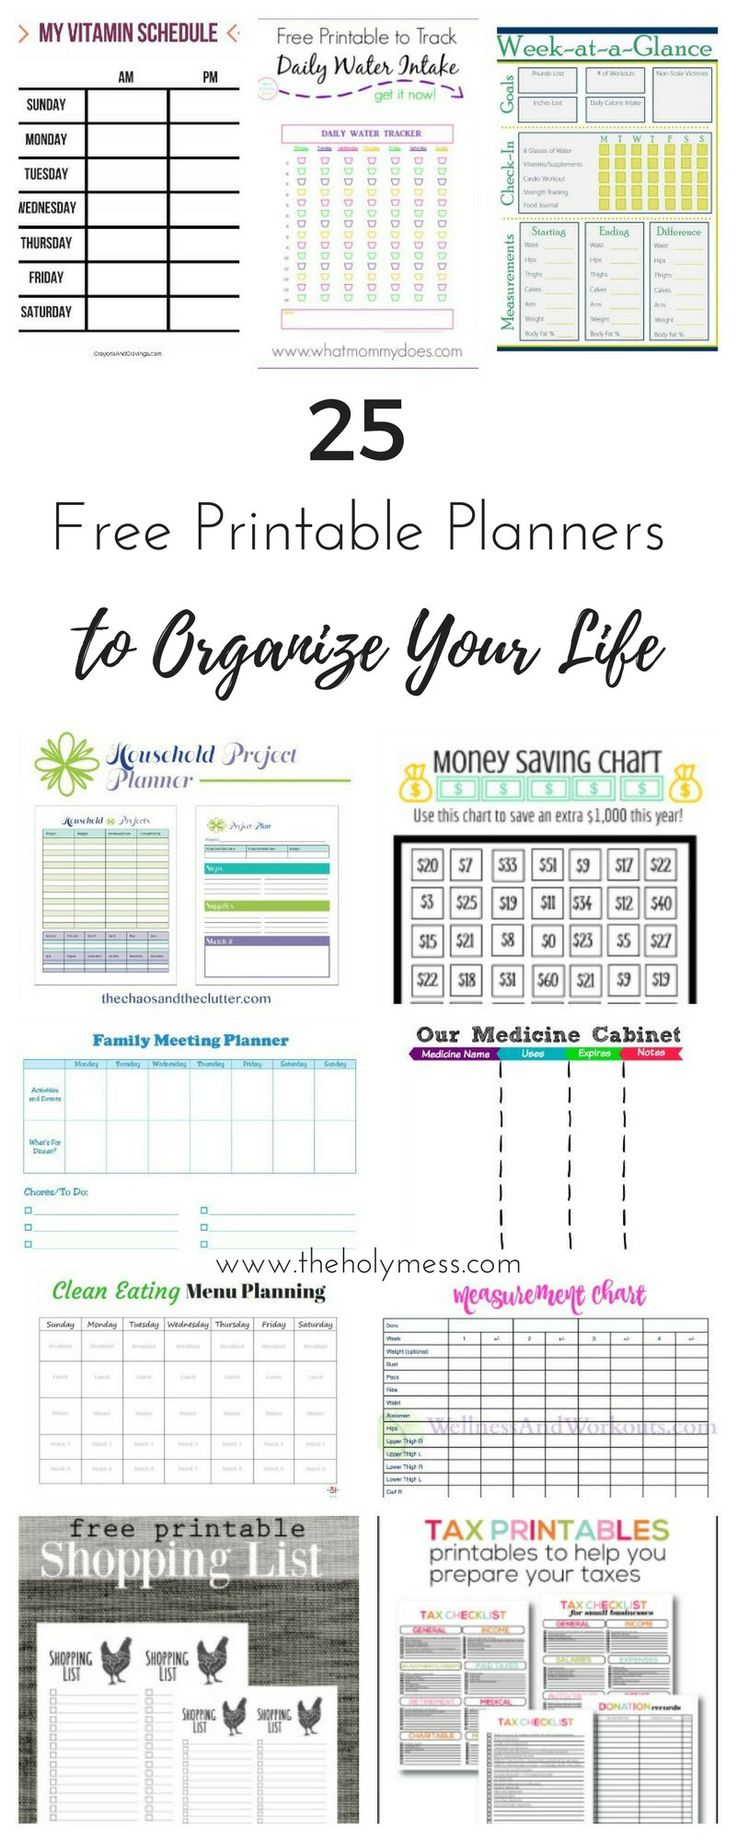 Use these 25 free printable planners to organize your life for budgeting, clean eating, household tasks, parenting, fitness, and more.